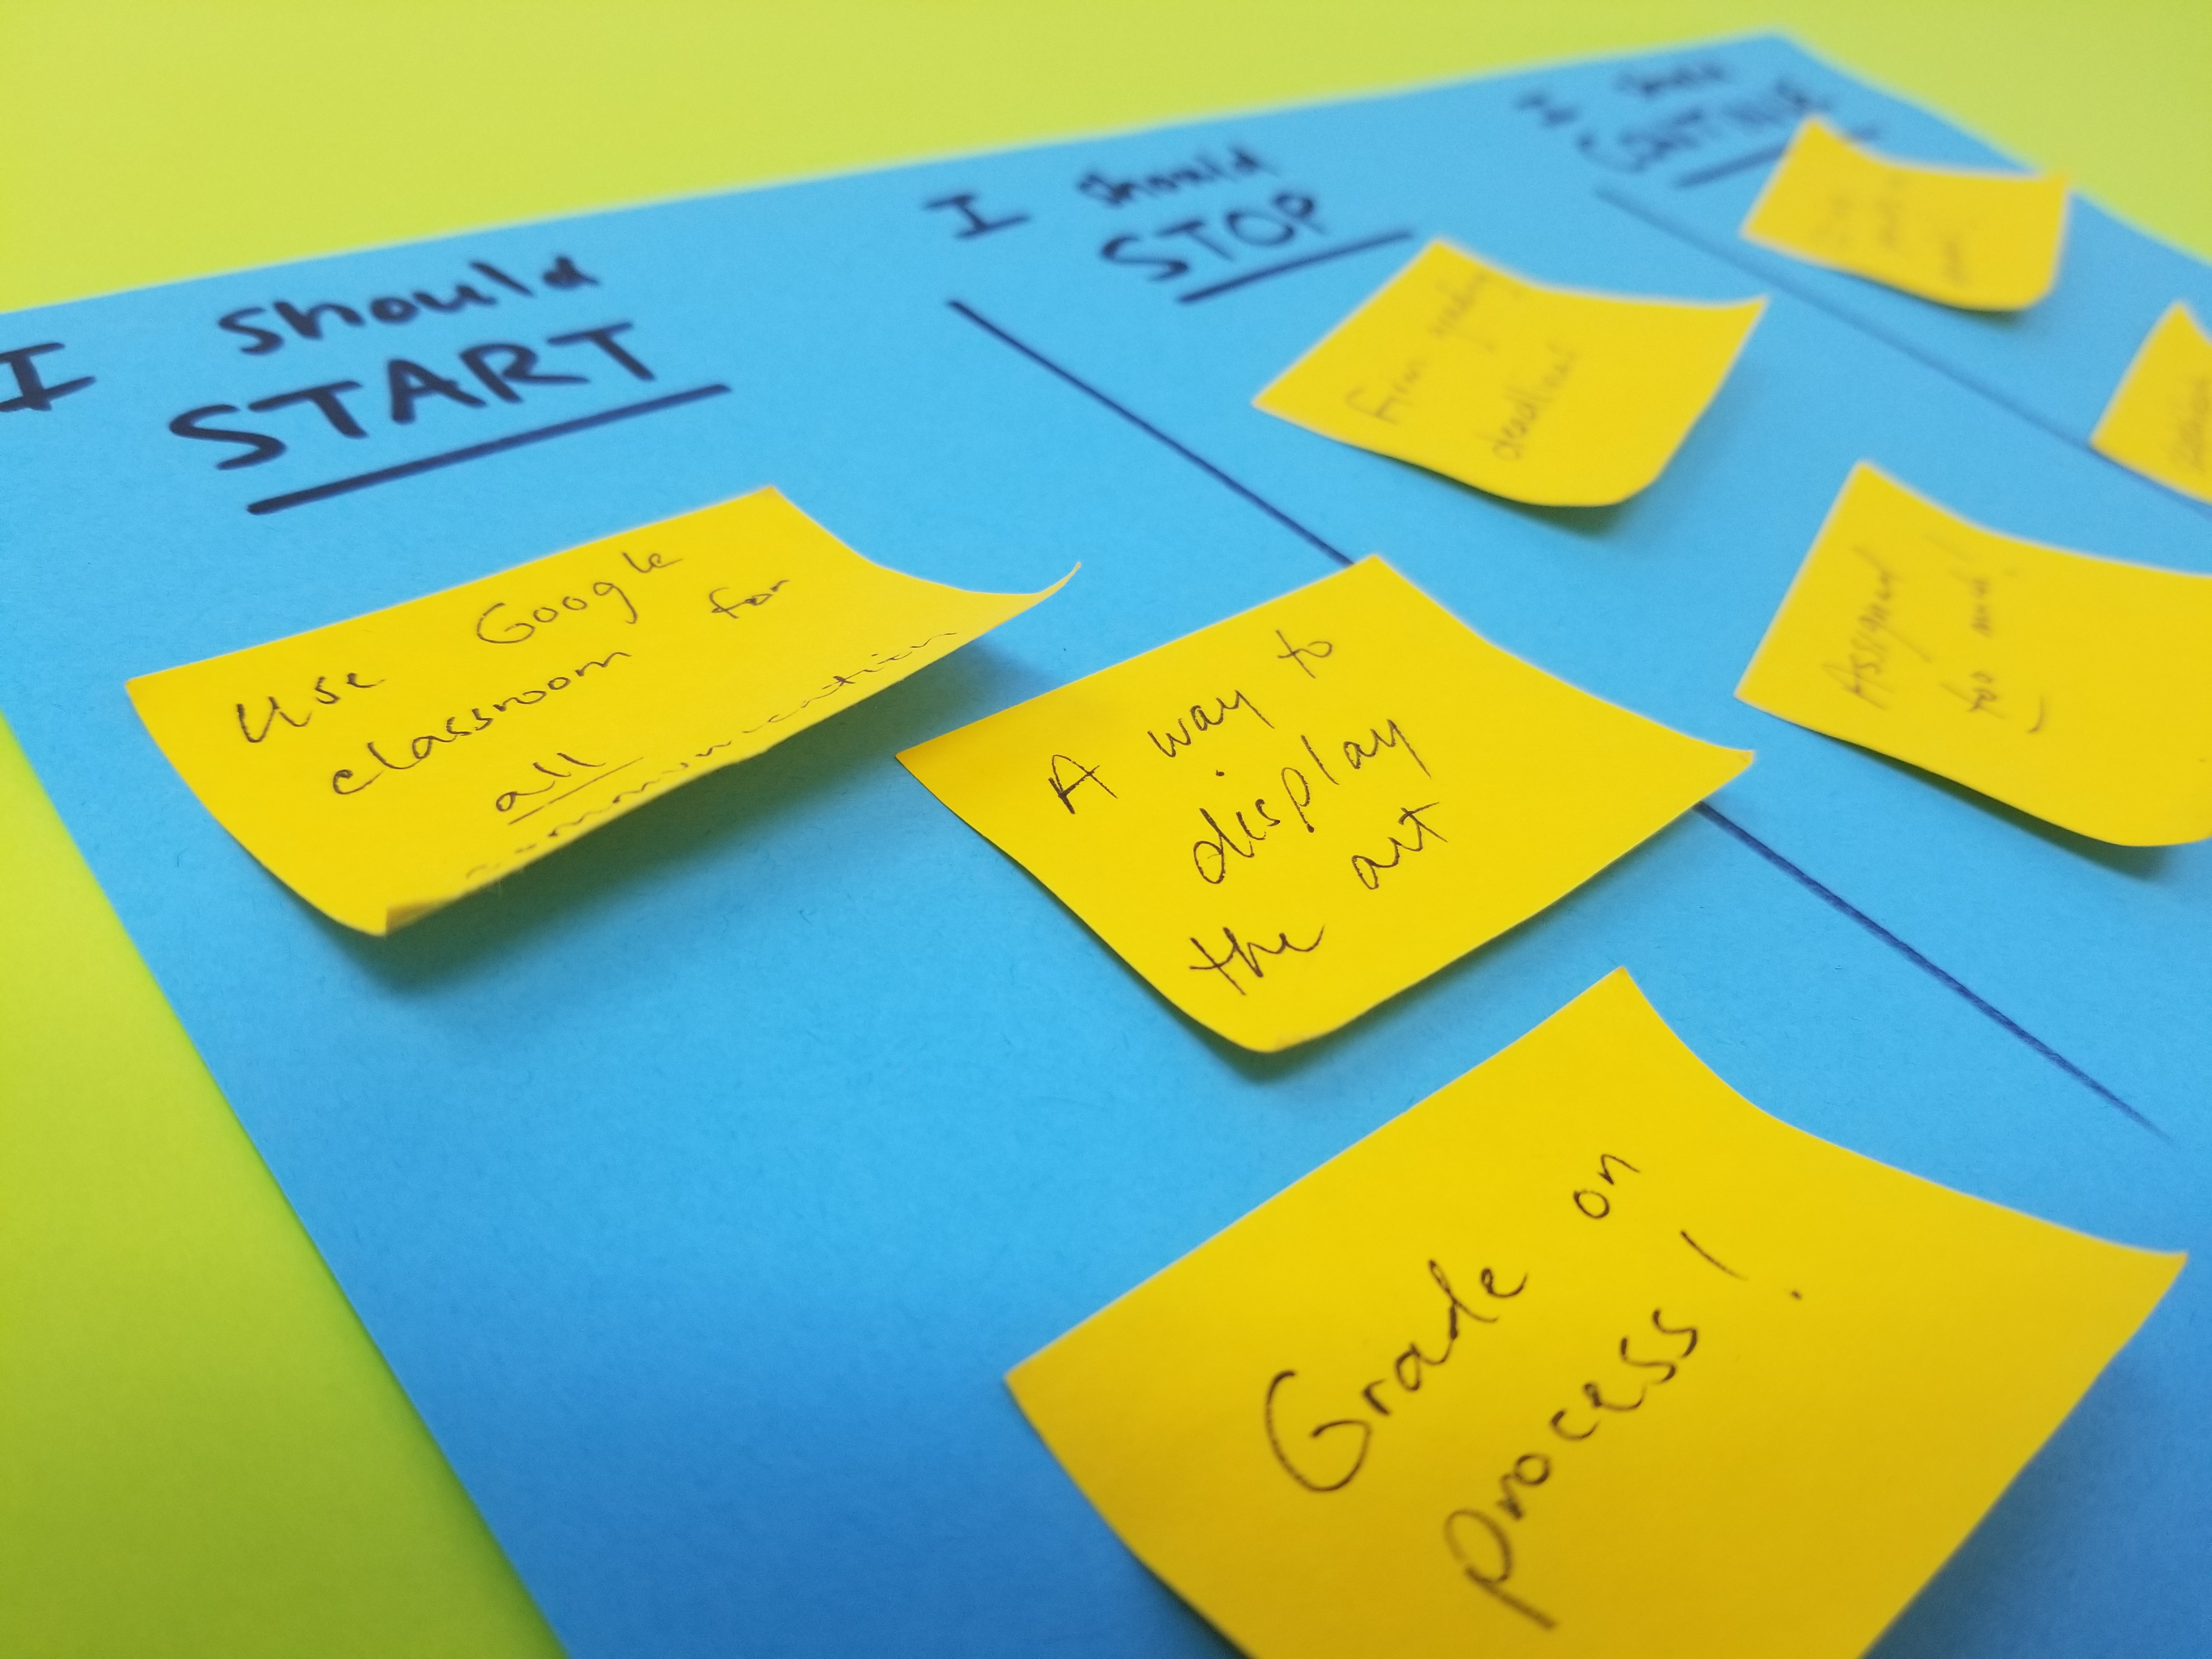 post it notes with words of reflection